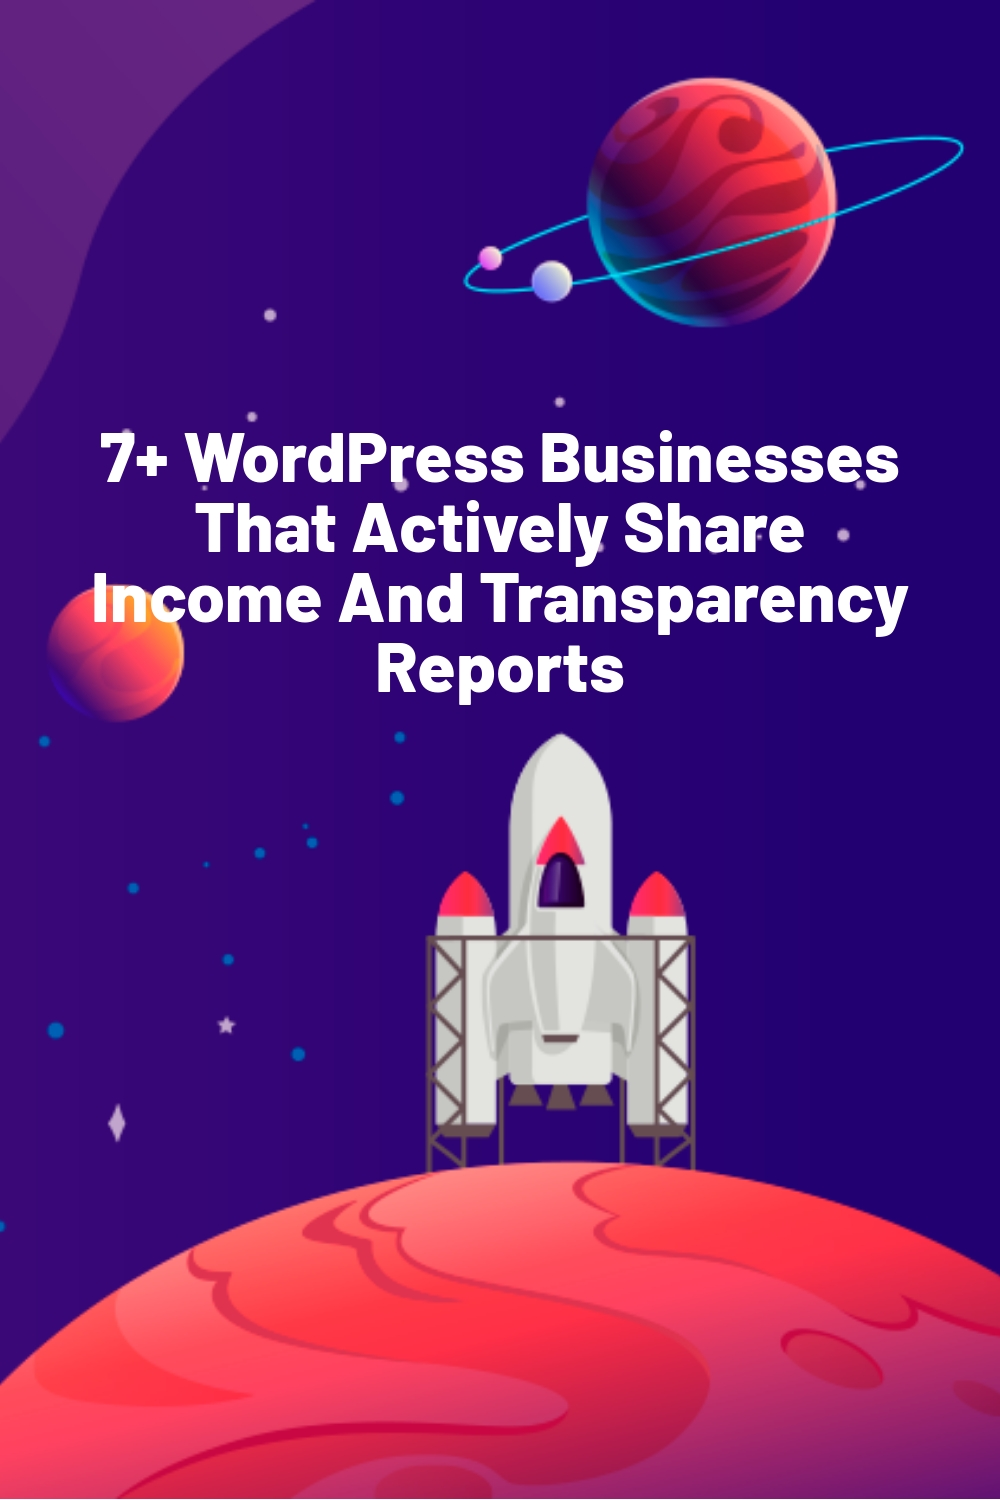 7+ WordPress Businesses That Actively Share Income And Transparency Reports